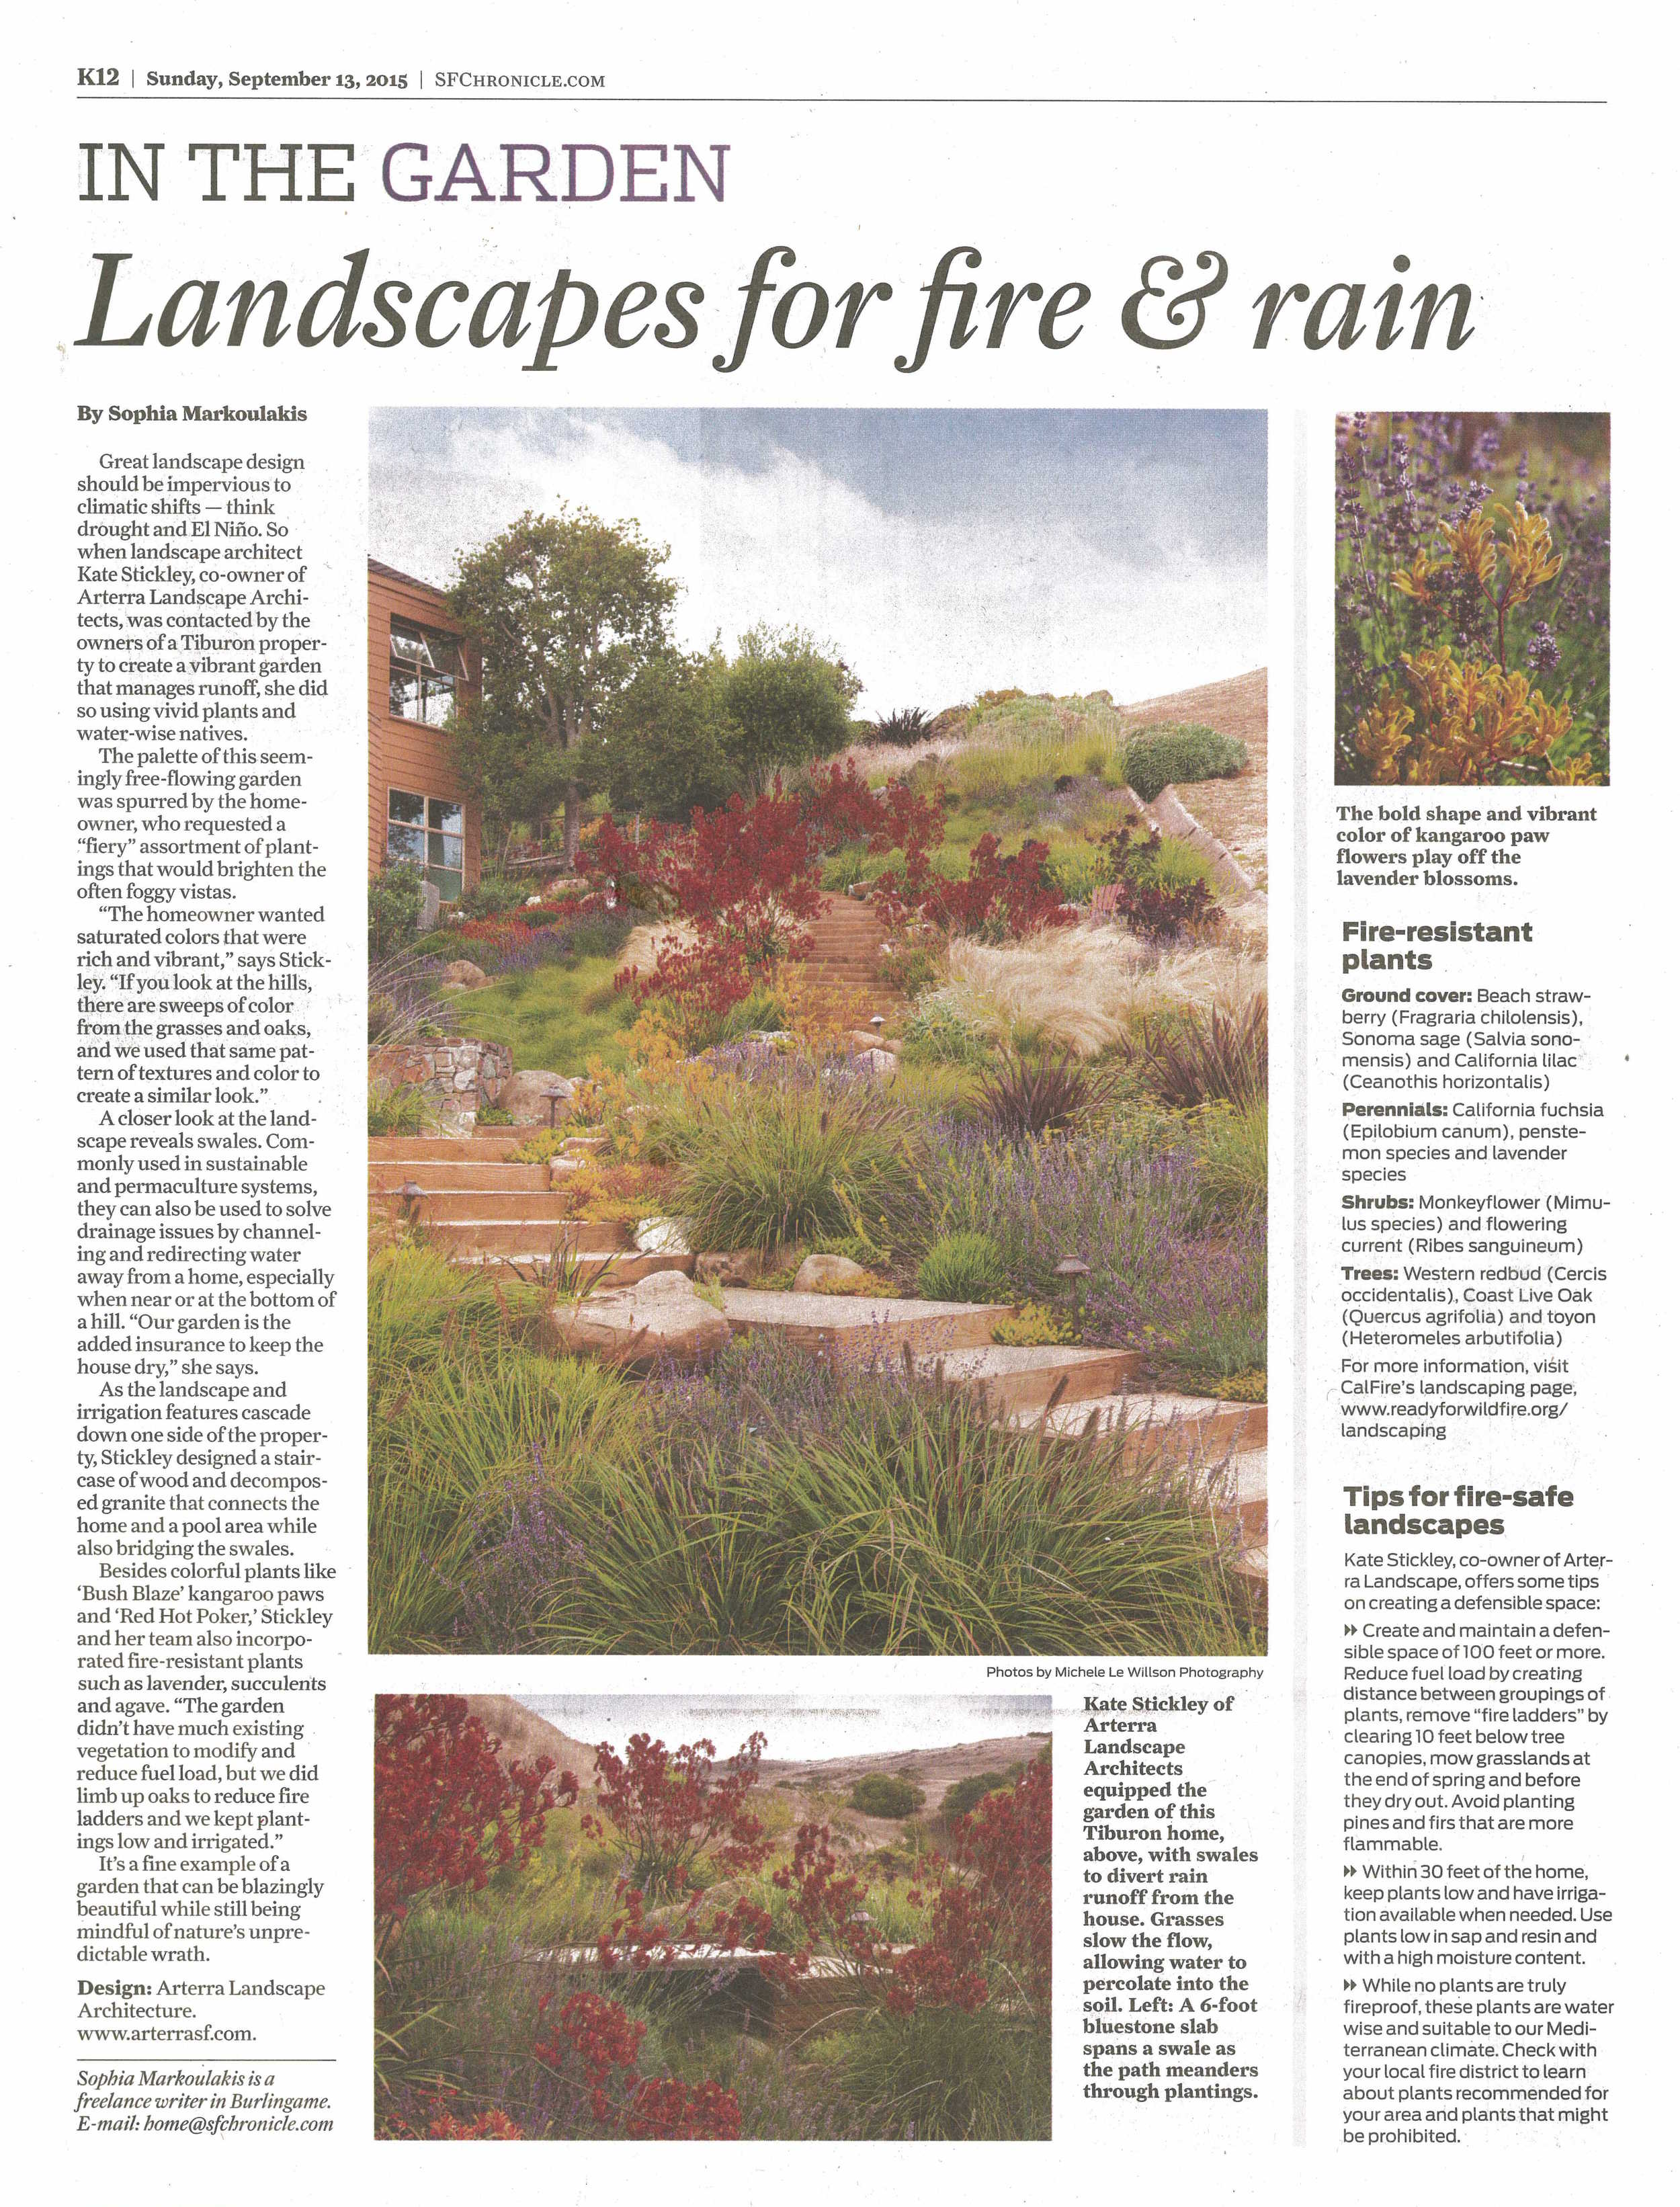 Arterra's project the Painterly Approach is featured for its drought and fire resistant plantings and design.